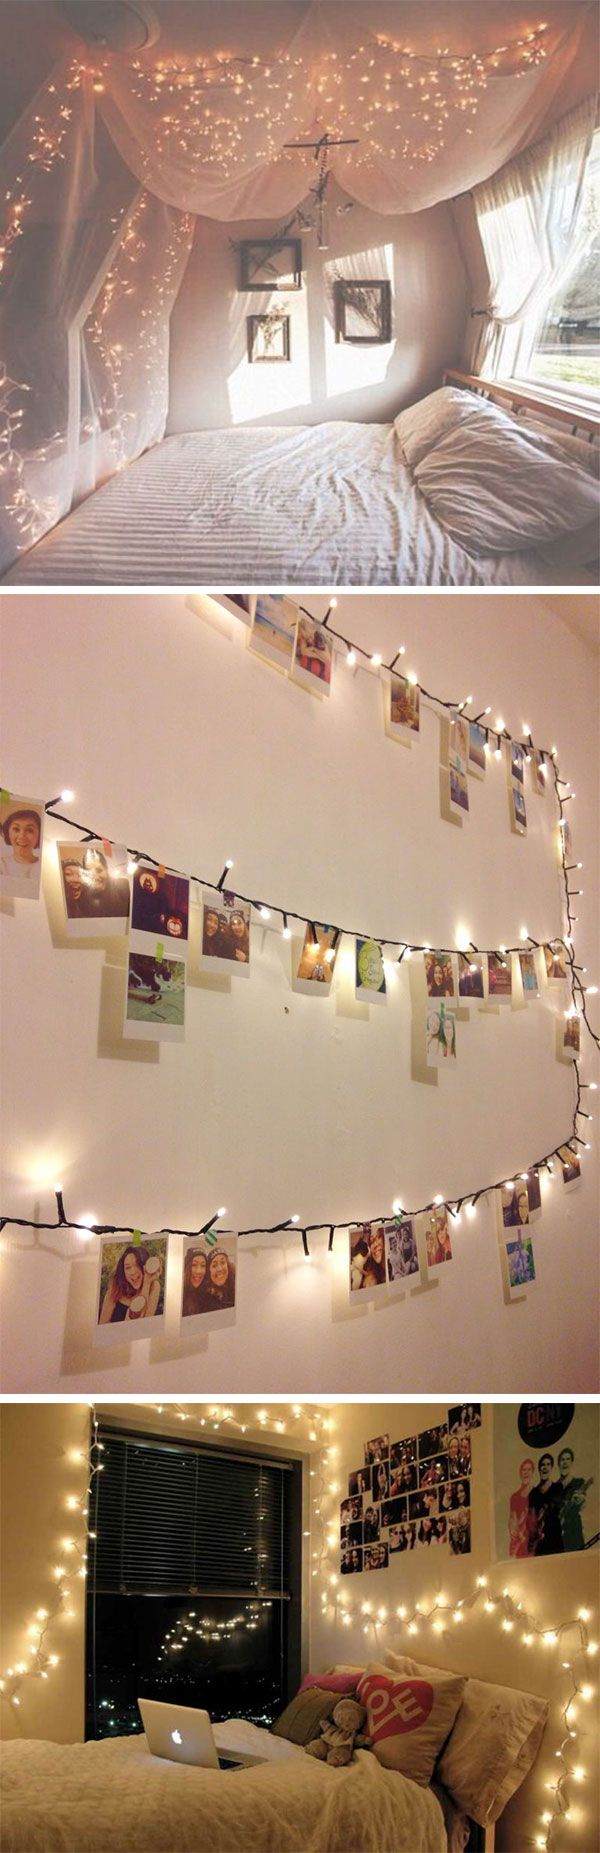 Best 25+ Diy bedroom decor ideas on Pinterest | Shelves in bedroom ...